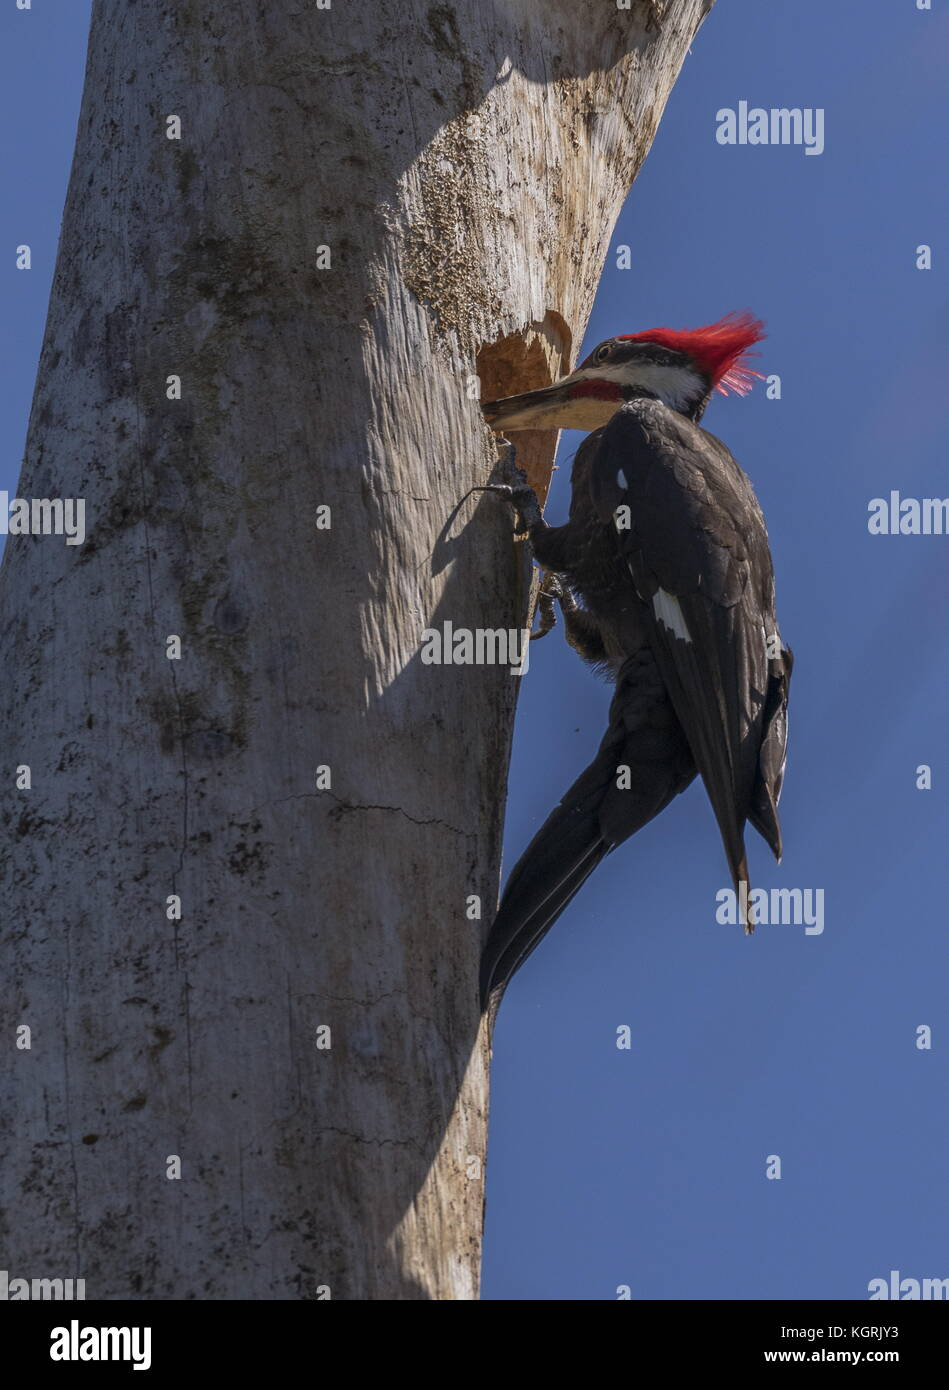 Male Pileated woodpecker, Dryocopus pileatus, at nest hole in old tree, Florida. - Stock Image